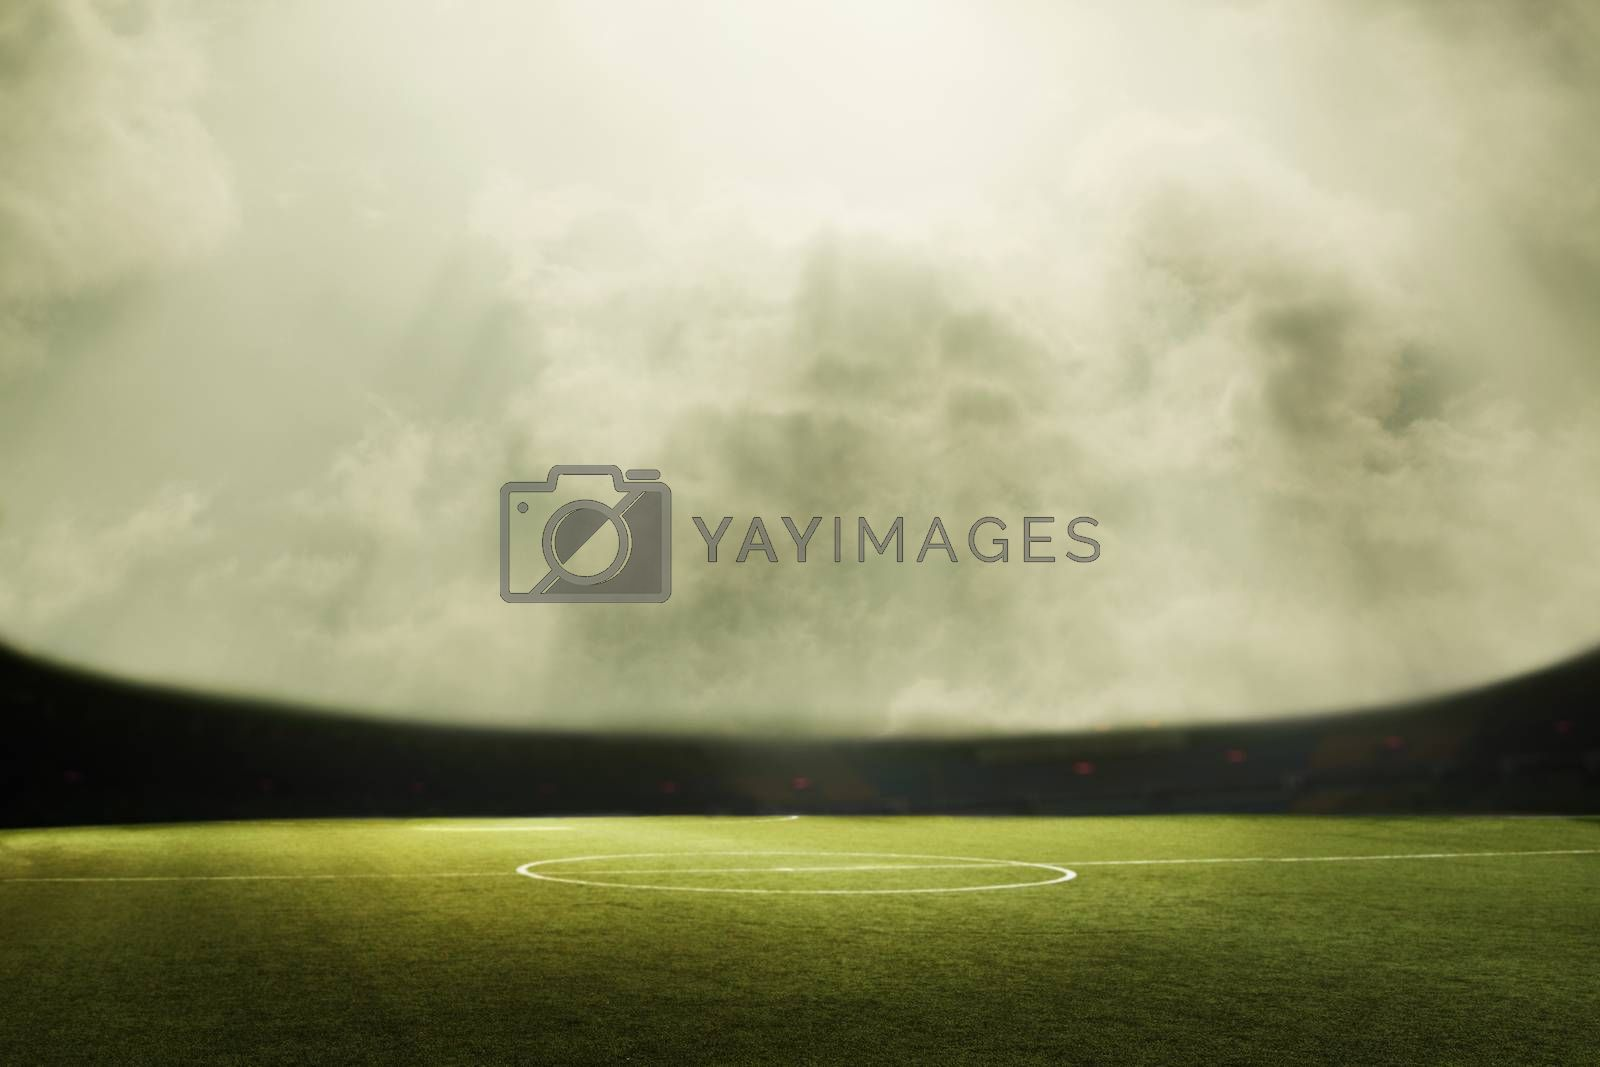 Digital composit of soccer field and cloudy sky